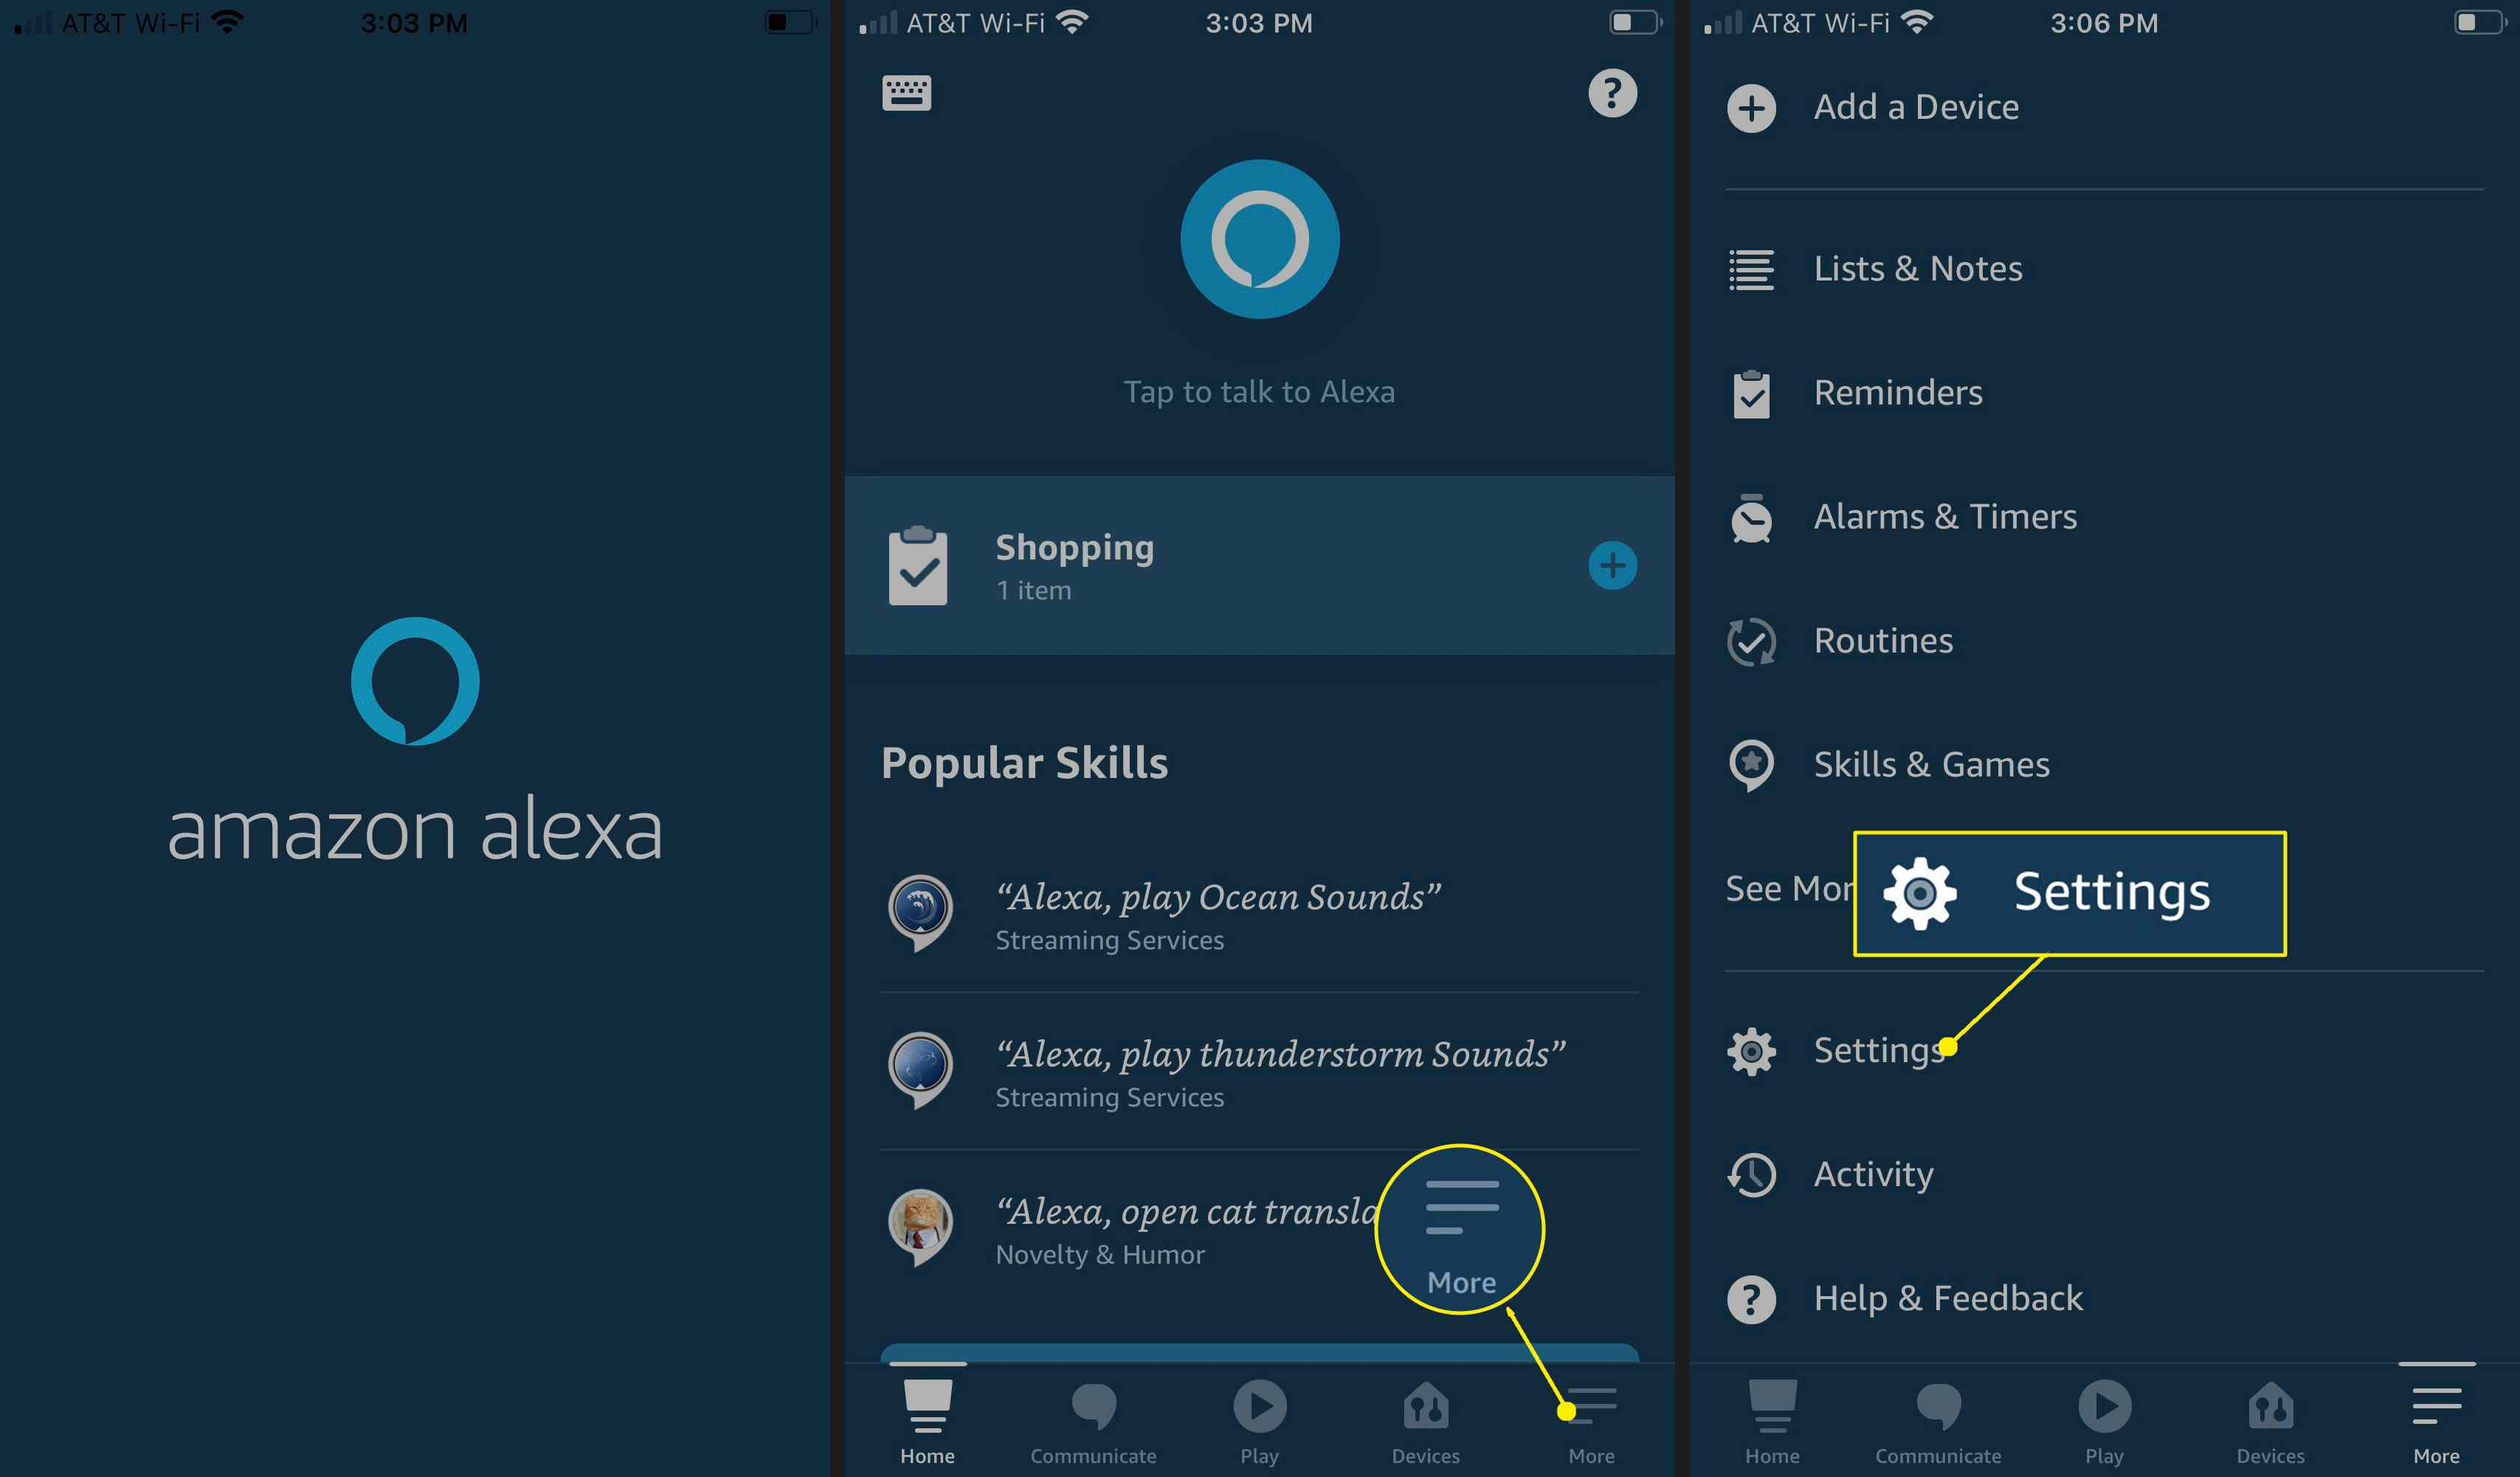 Open the Alexa app and tap More > Settings.